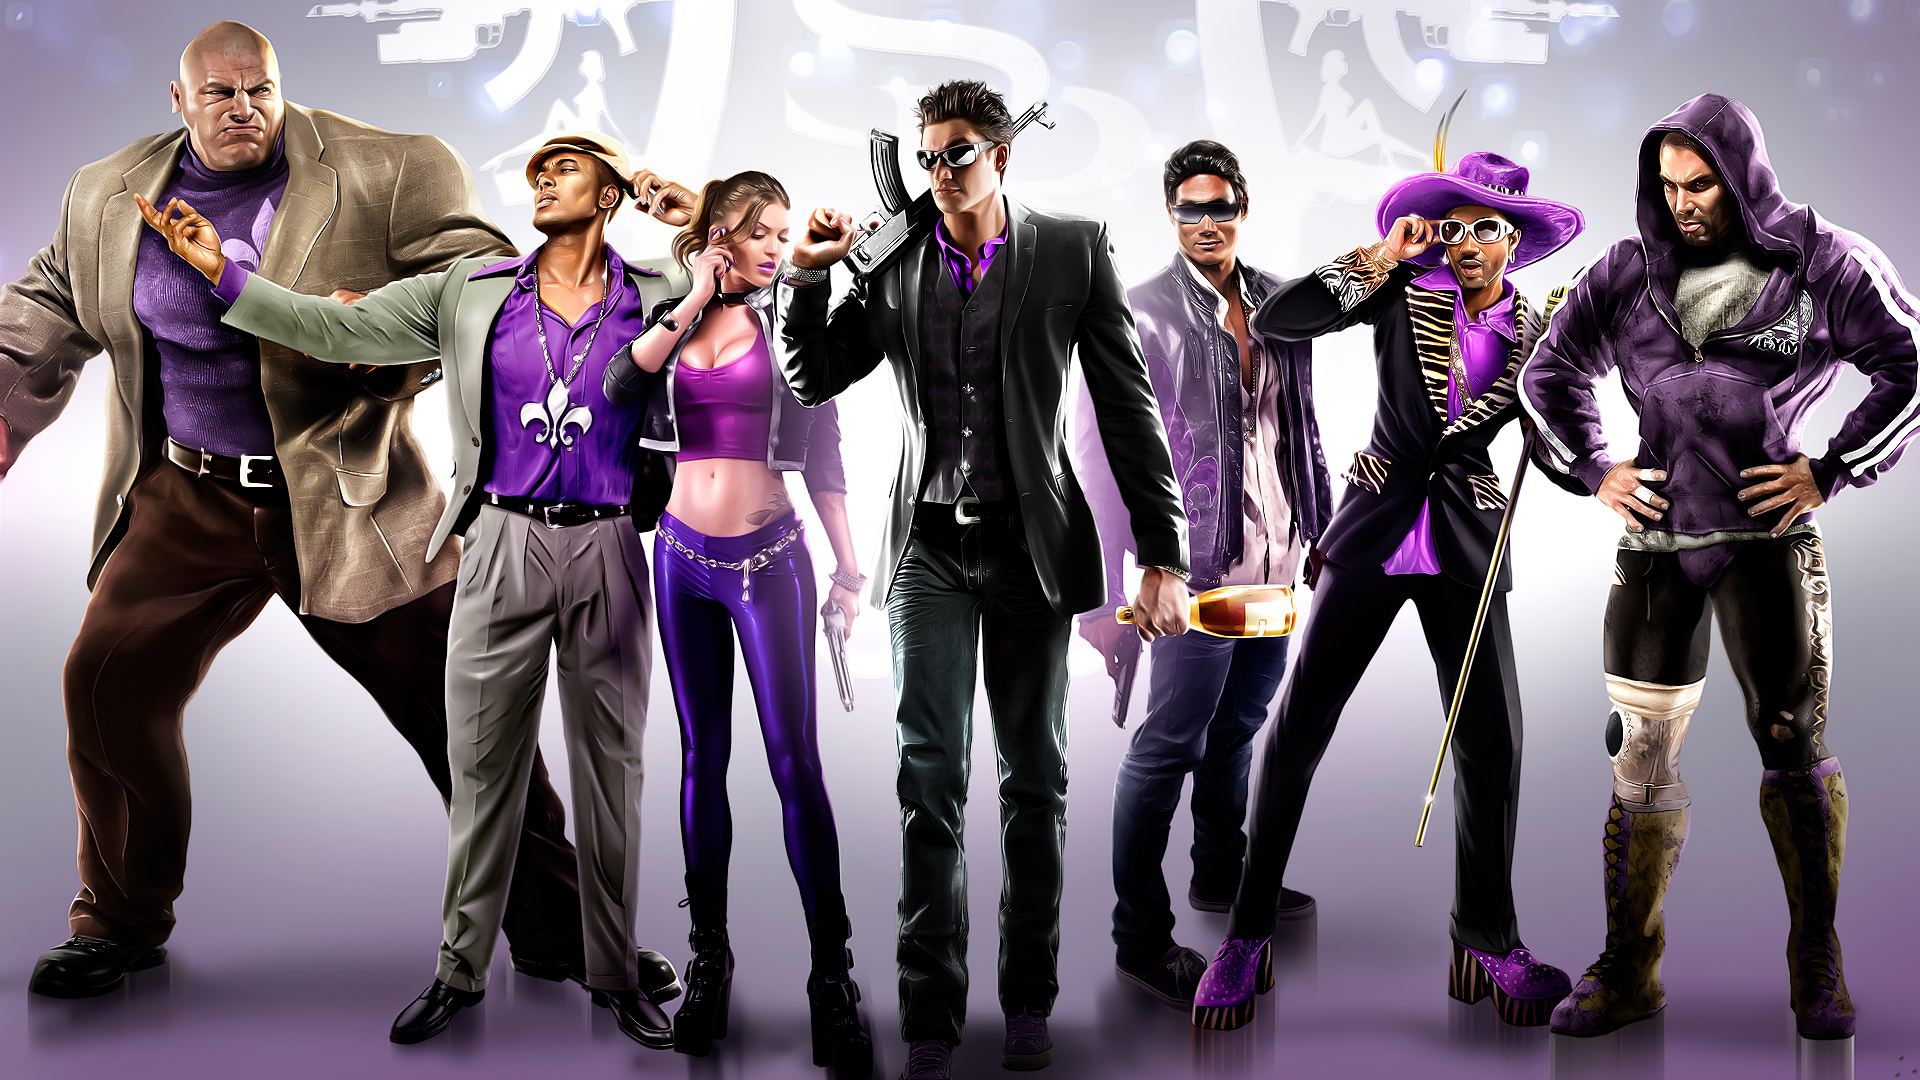 Арт к игре Saints Row 4